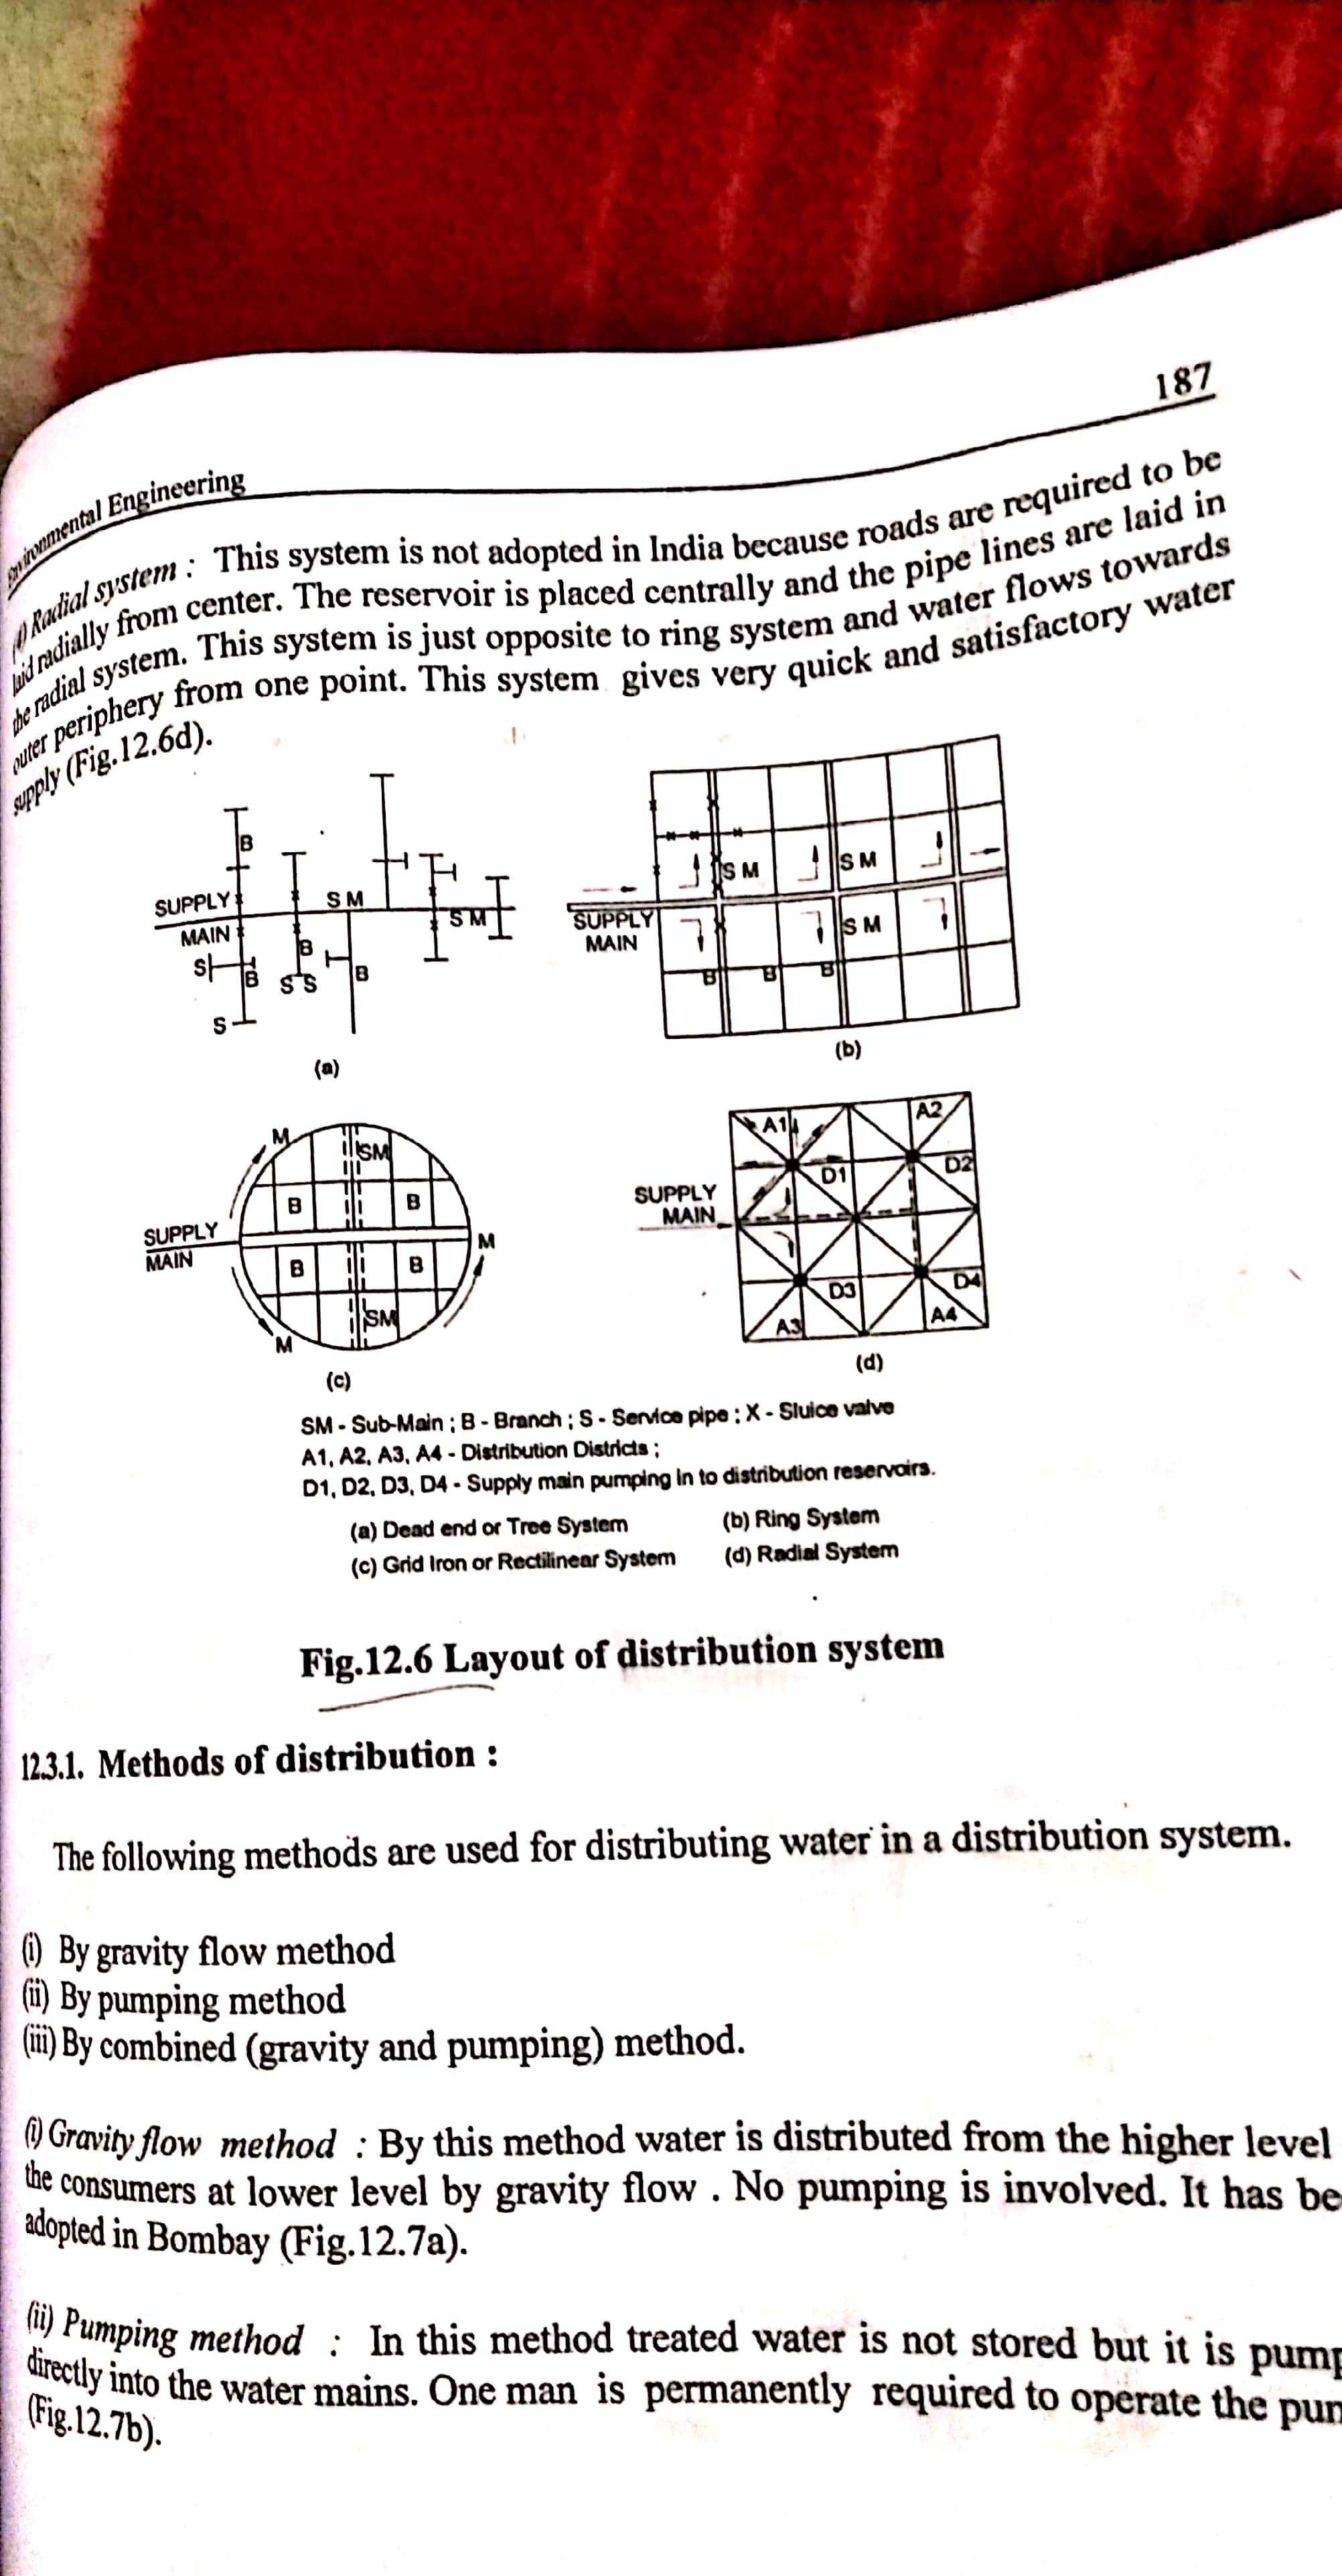 Method of Distribution -New Doc 2019-11-30 20.41.41_85.jpg